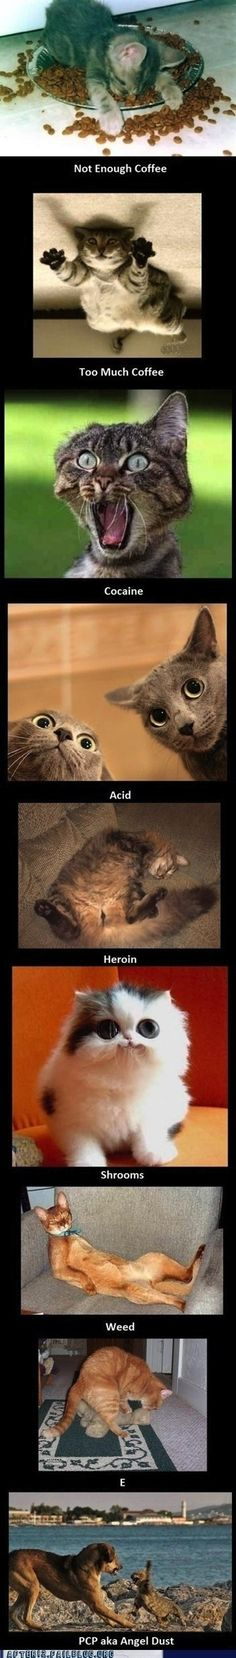 cats on drugs (don't approve of certain drugs but this is really funny)